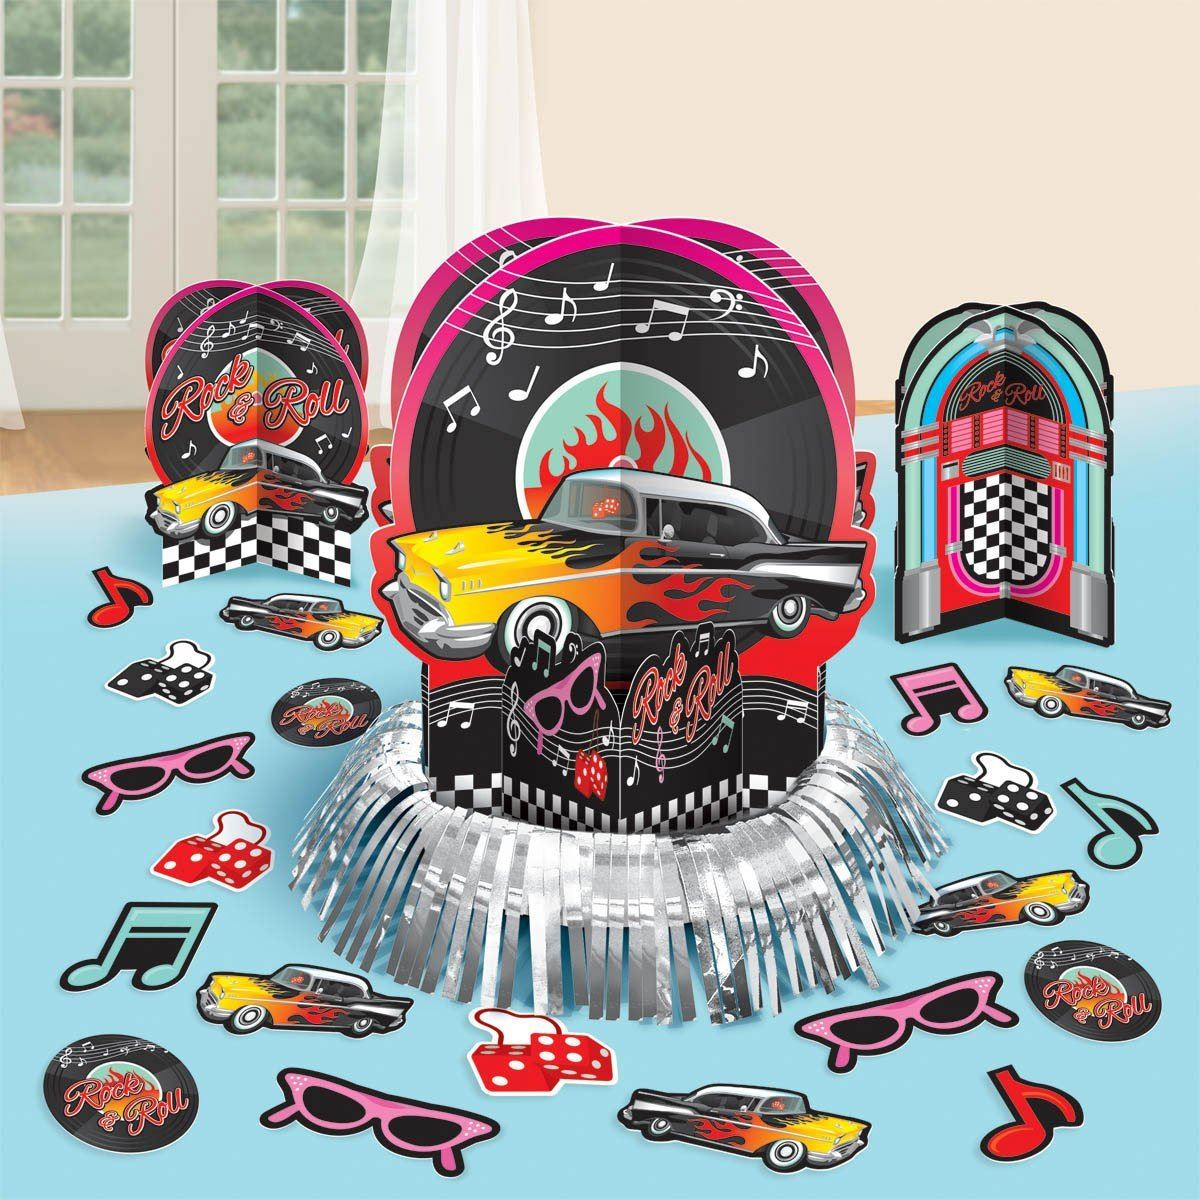 Classic 50 39 s themed party tableware decorations rock roll 1950s retro supplies ebay - Rock and roll theme party decorations ...